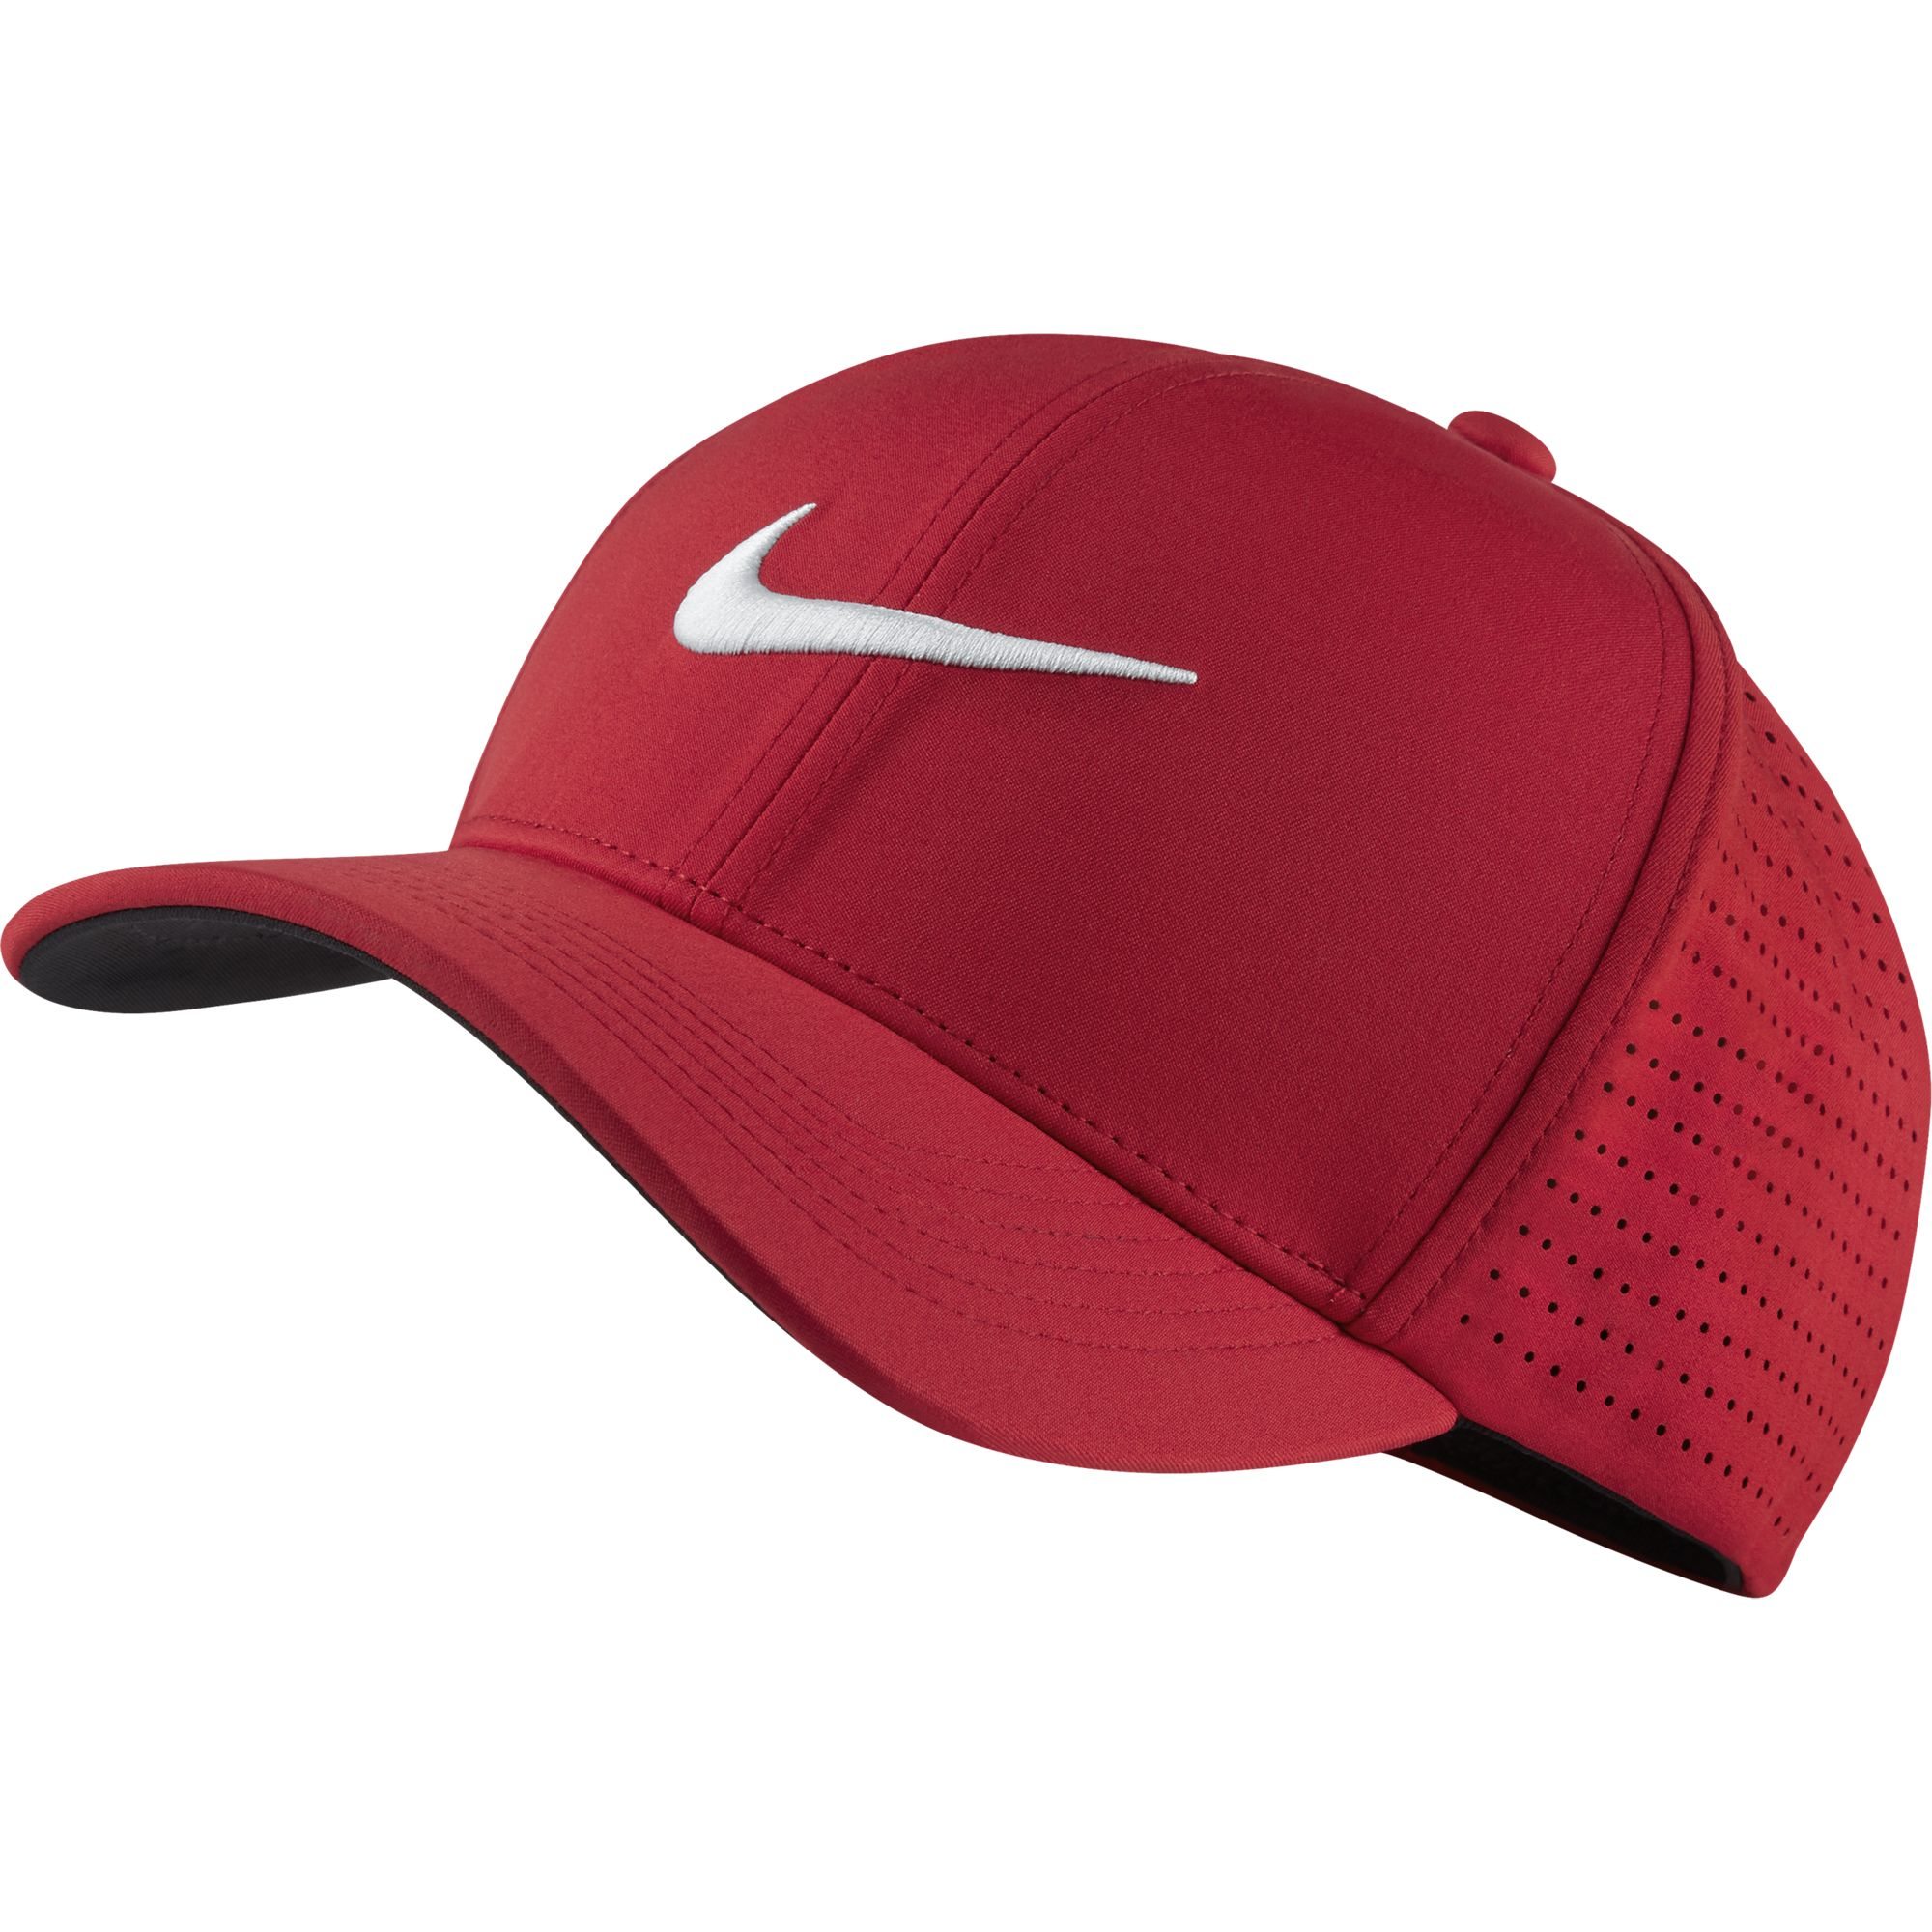 The Nike Classic 99 Fitted Golf Hat offers a comfortable fit and  exceptional airflow on the course with stretch fabric and laser-cut  perforations on the ... b06ba0c1e83a